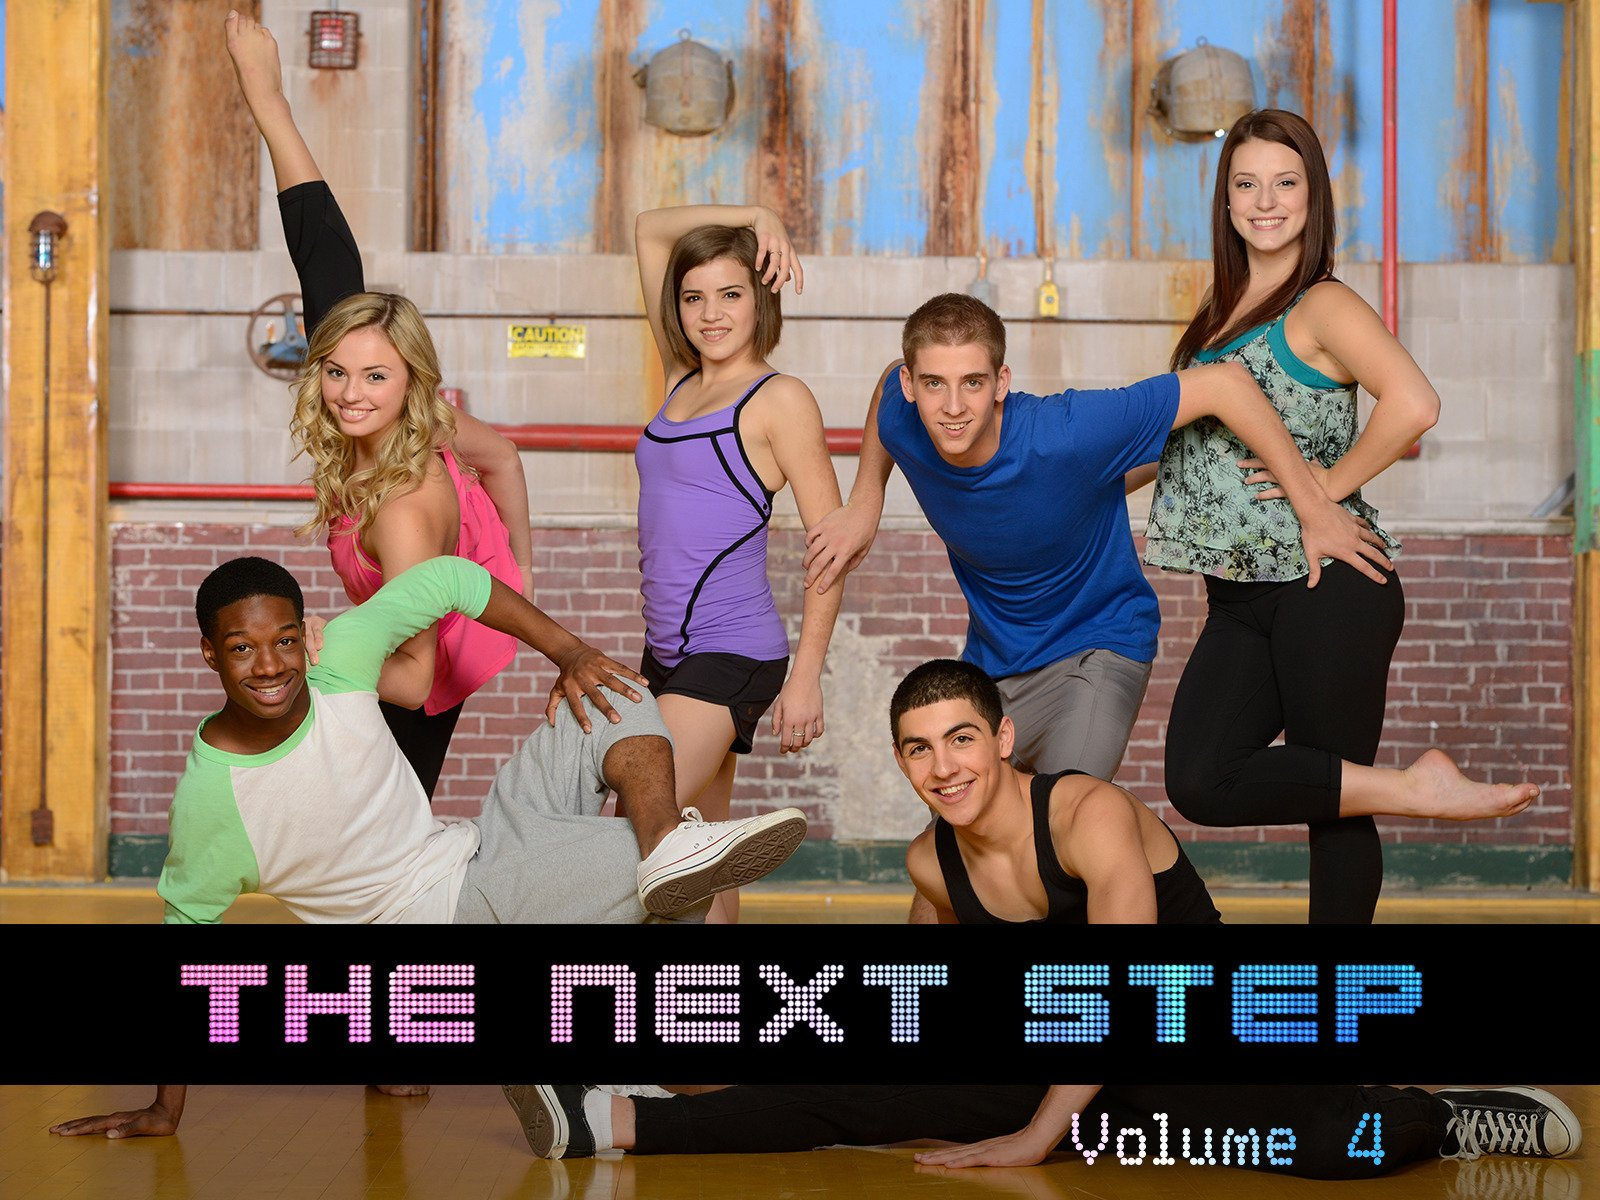 Watch The Next Step Vol 4 Prime Video